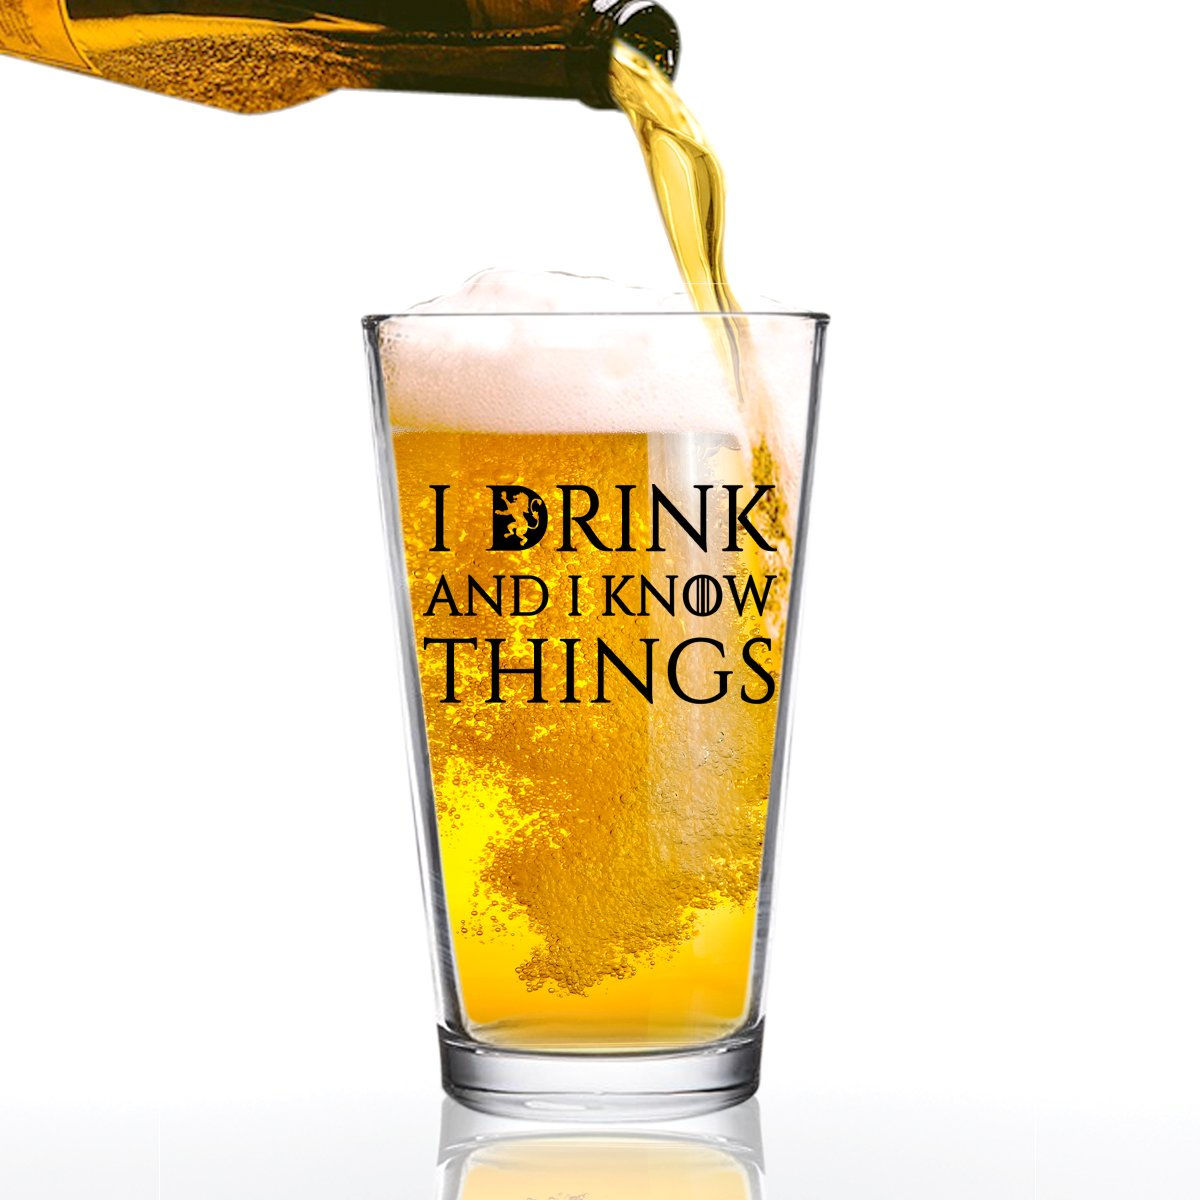 I Drink and I Know Things Beer Glass - 16 oz - Funny Novelty Beer Glass - Humorous Gift Present for Dad, Men, Friends, or Him- Made in USA - Inspired by Game of Thrones